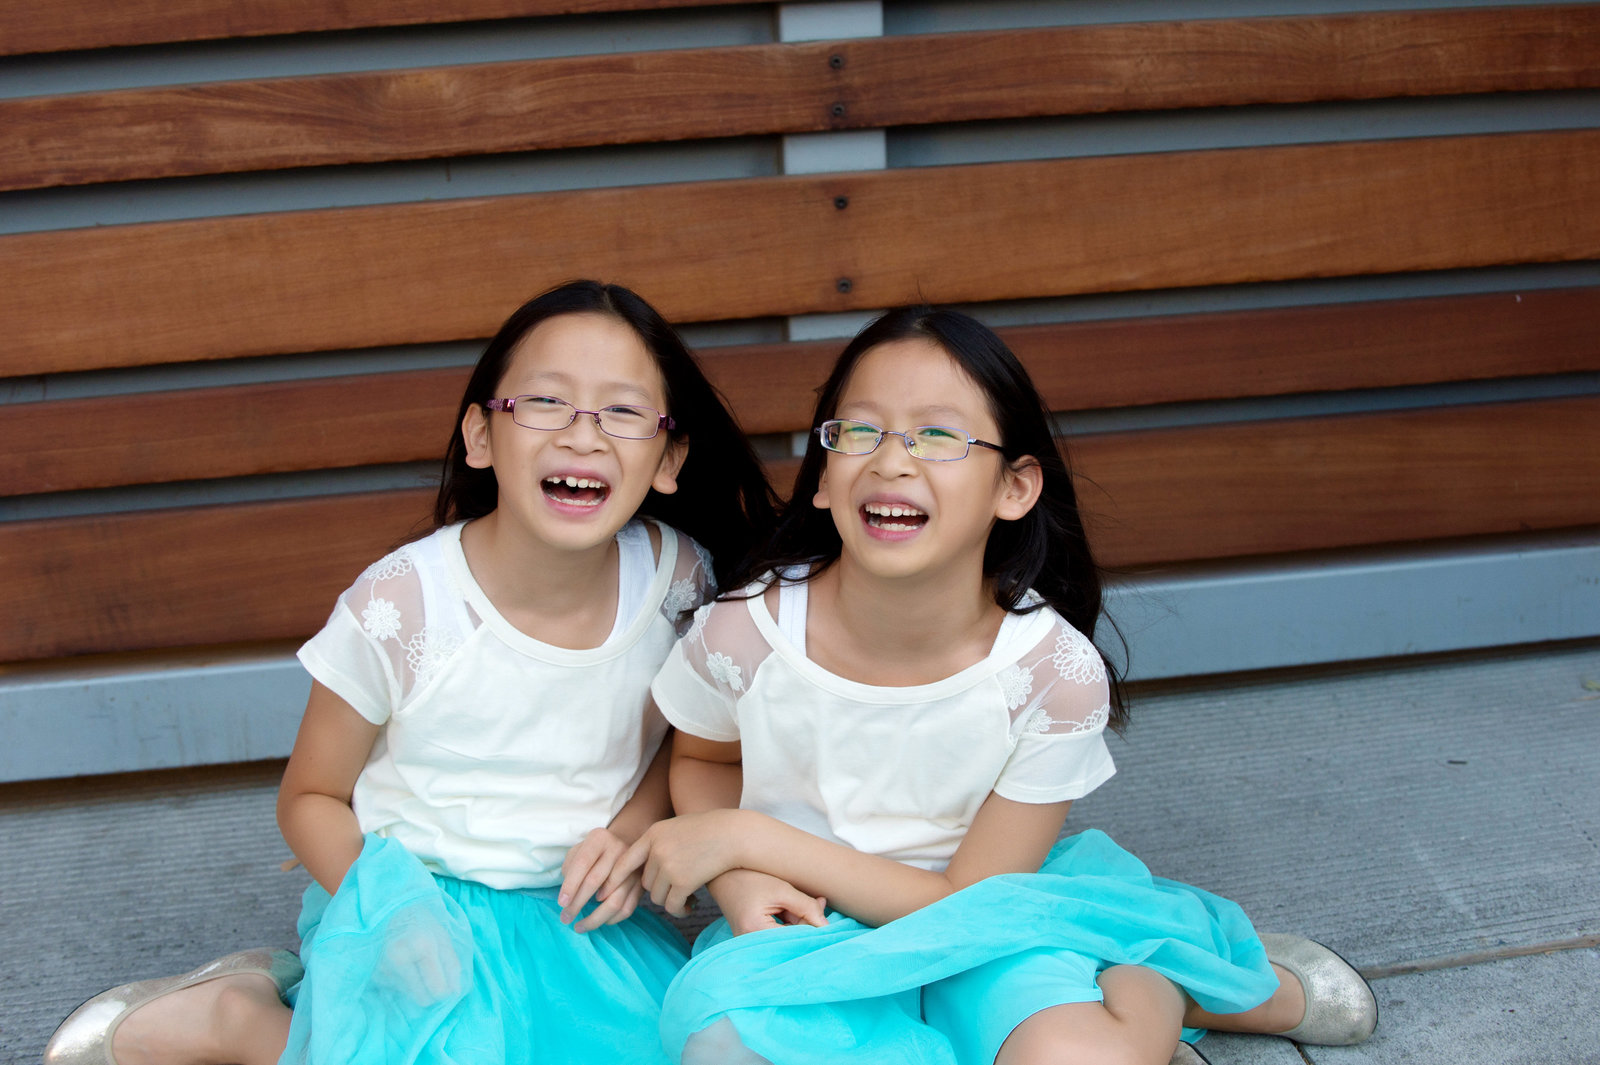 twin girls wearing matching outfits share a laugh